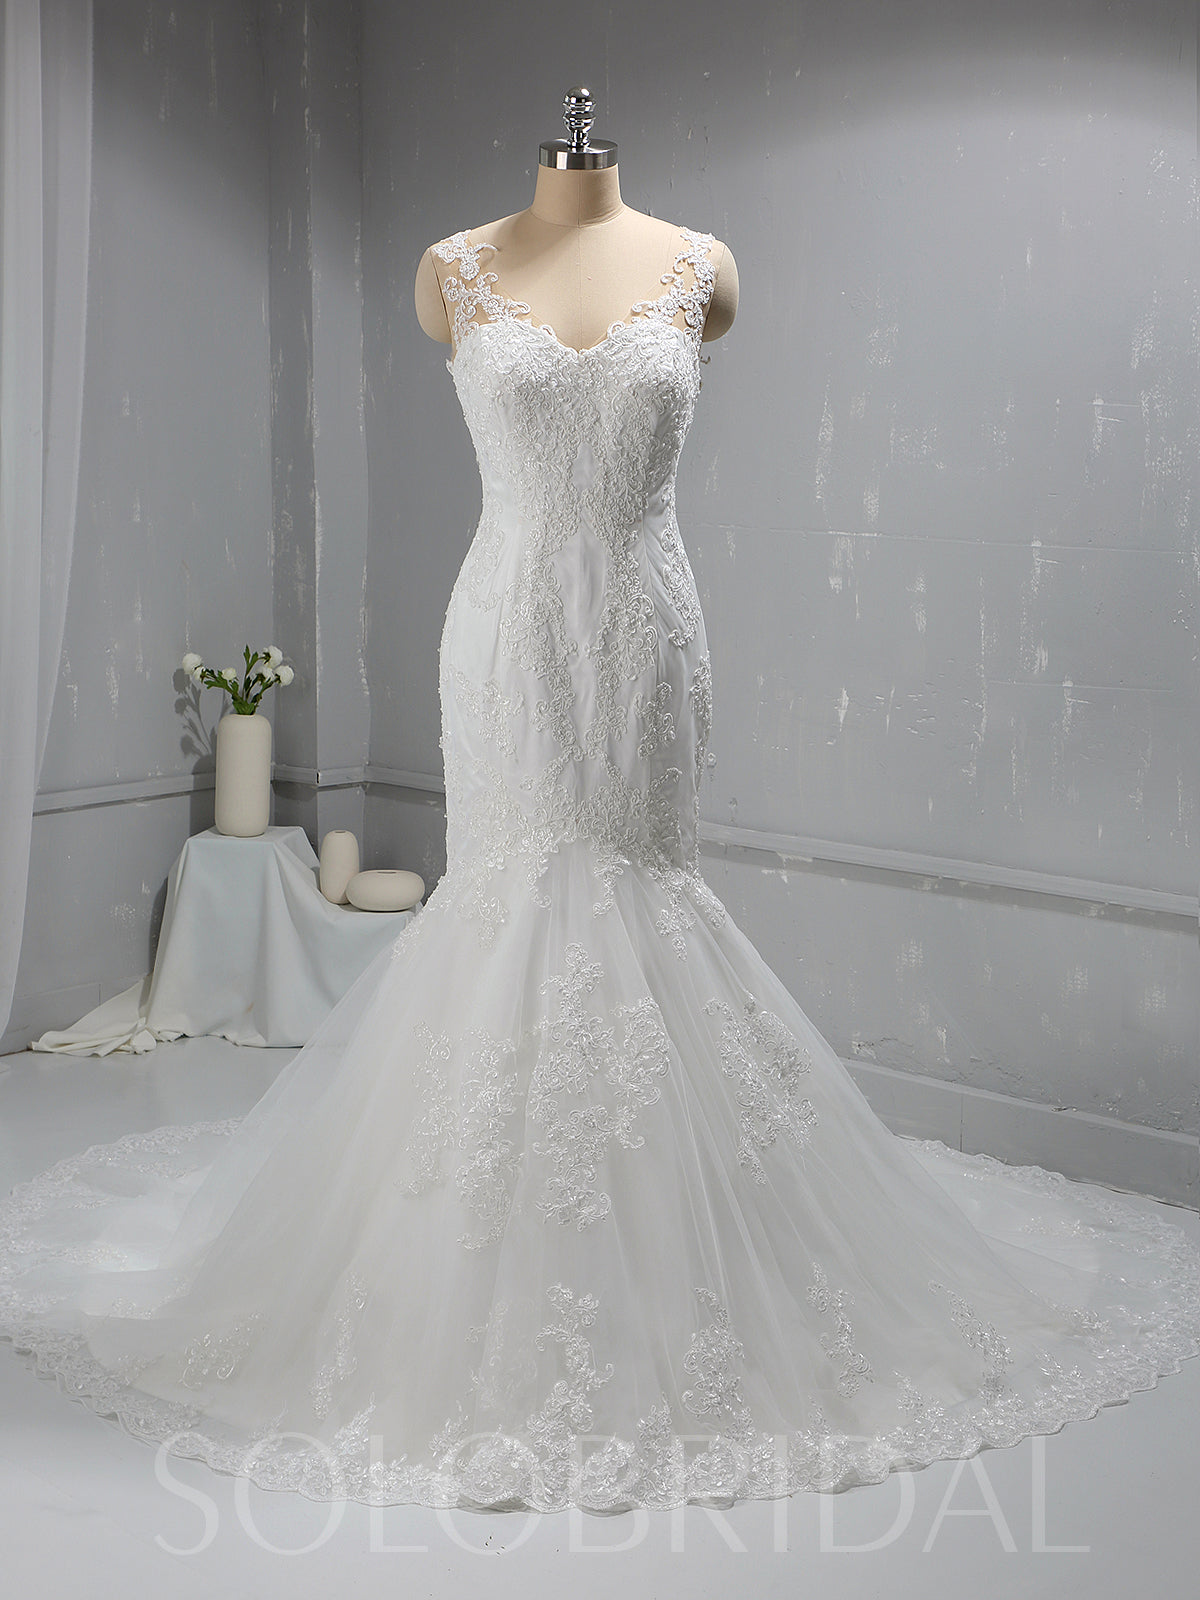 Ivory Mermaid Lace Wedding Dress